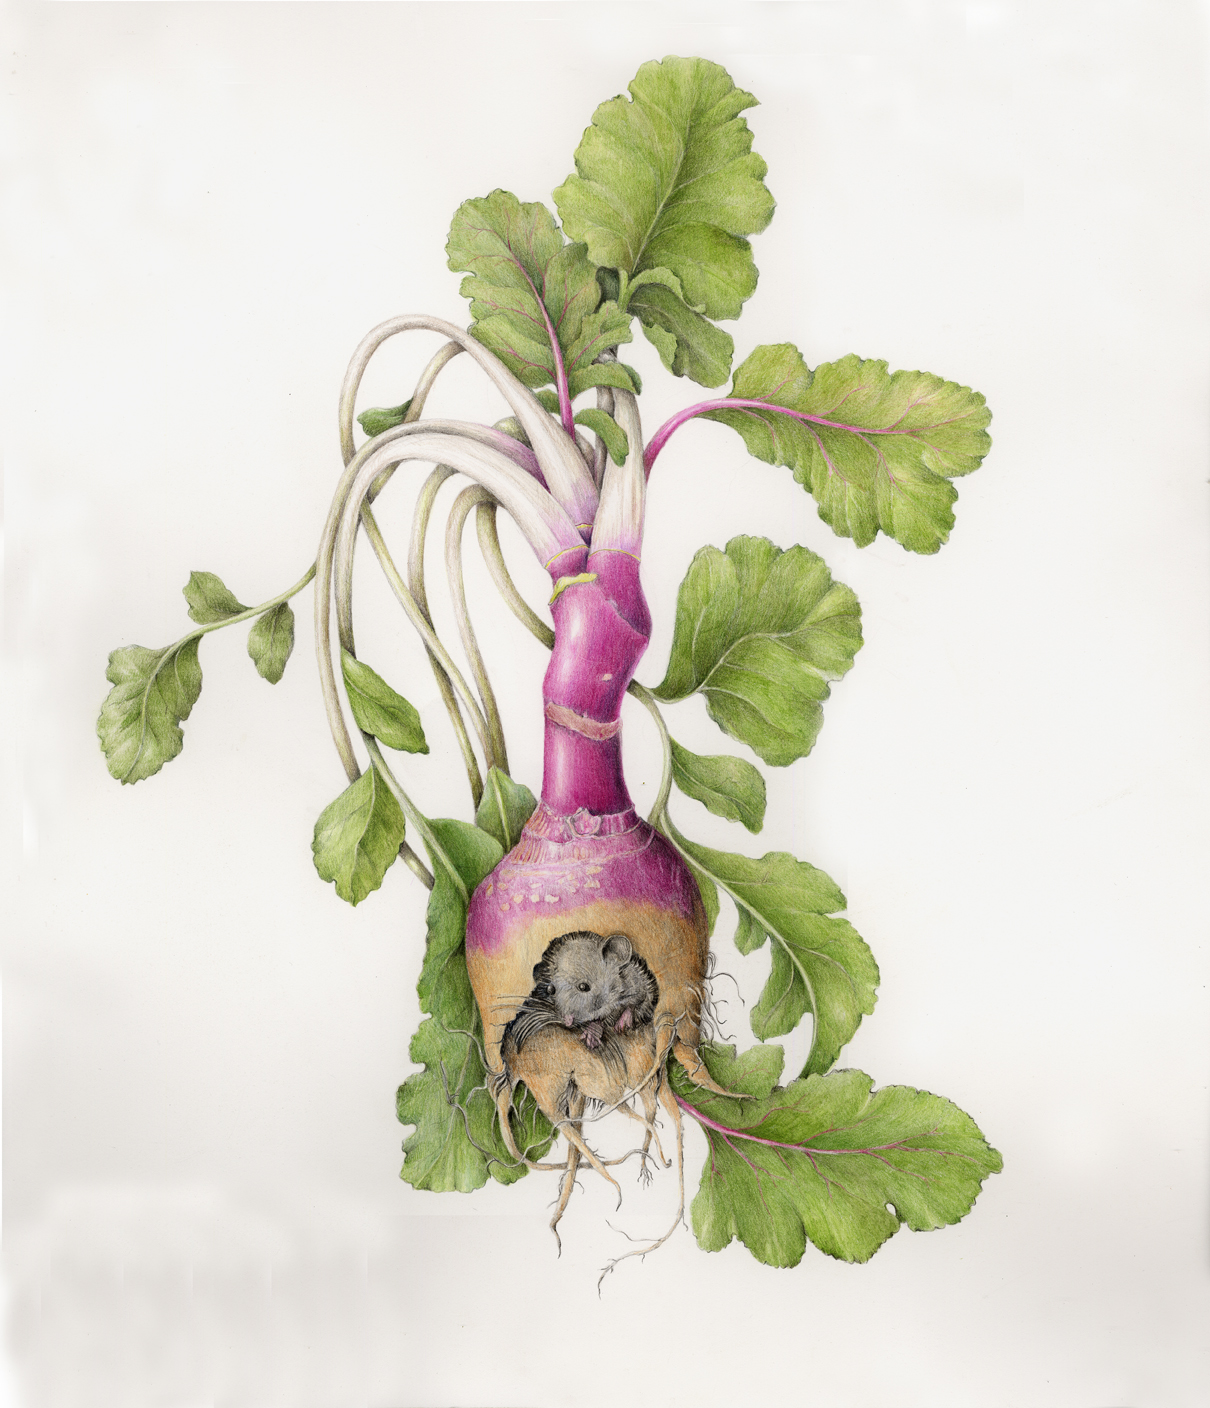 The Mouse in a Rutabaga